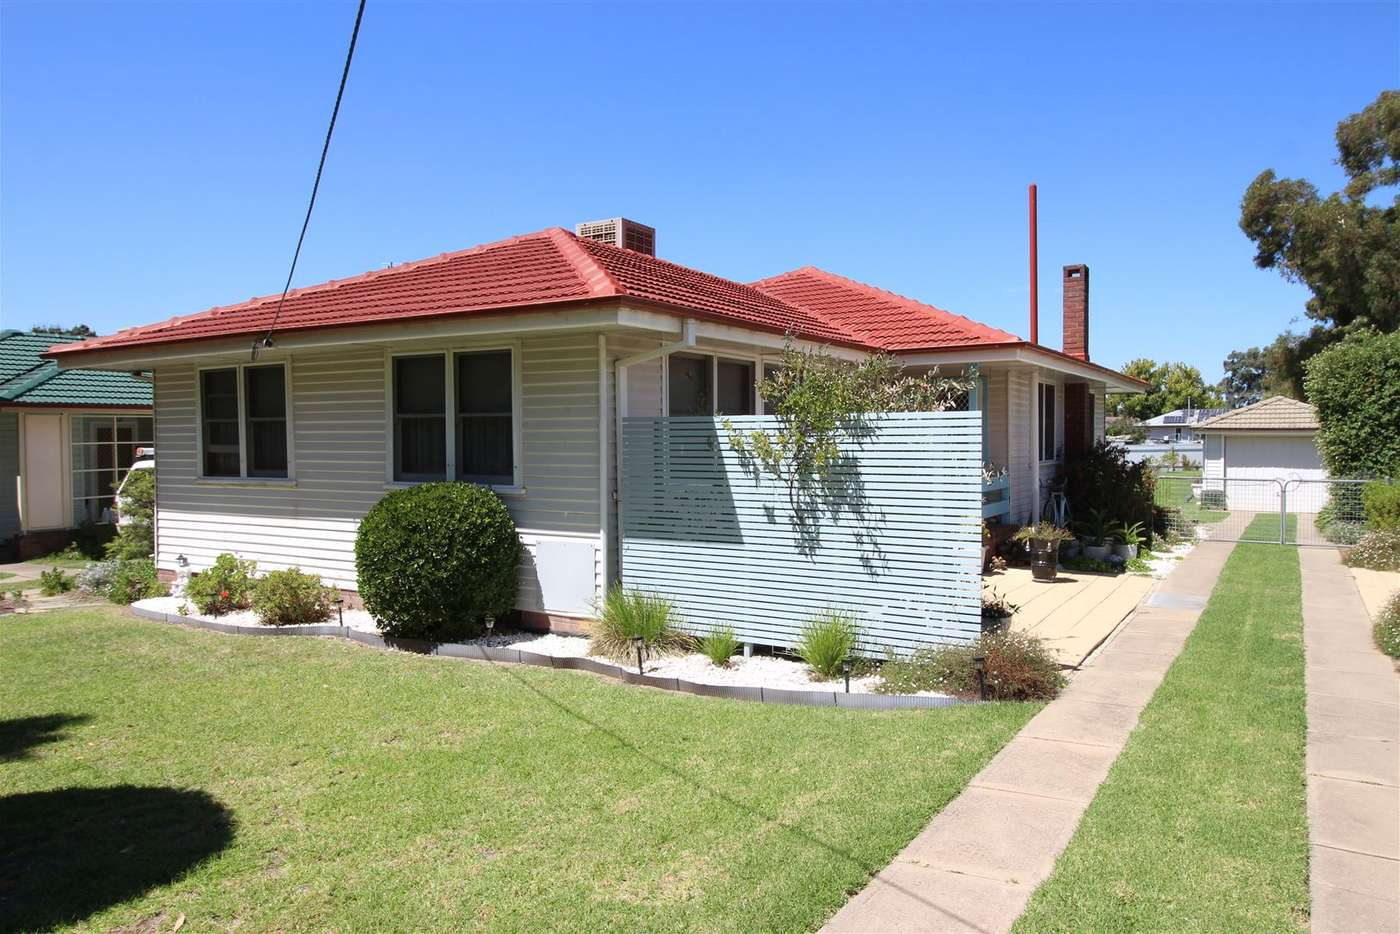 Main view of Homely house listing, 11 Richards Street, Cootamundra NSW 2590